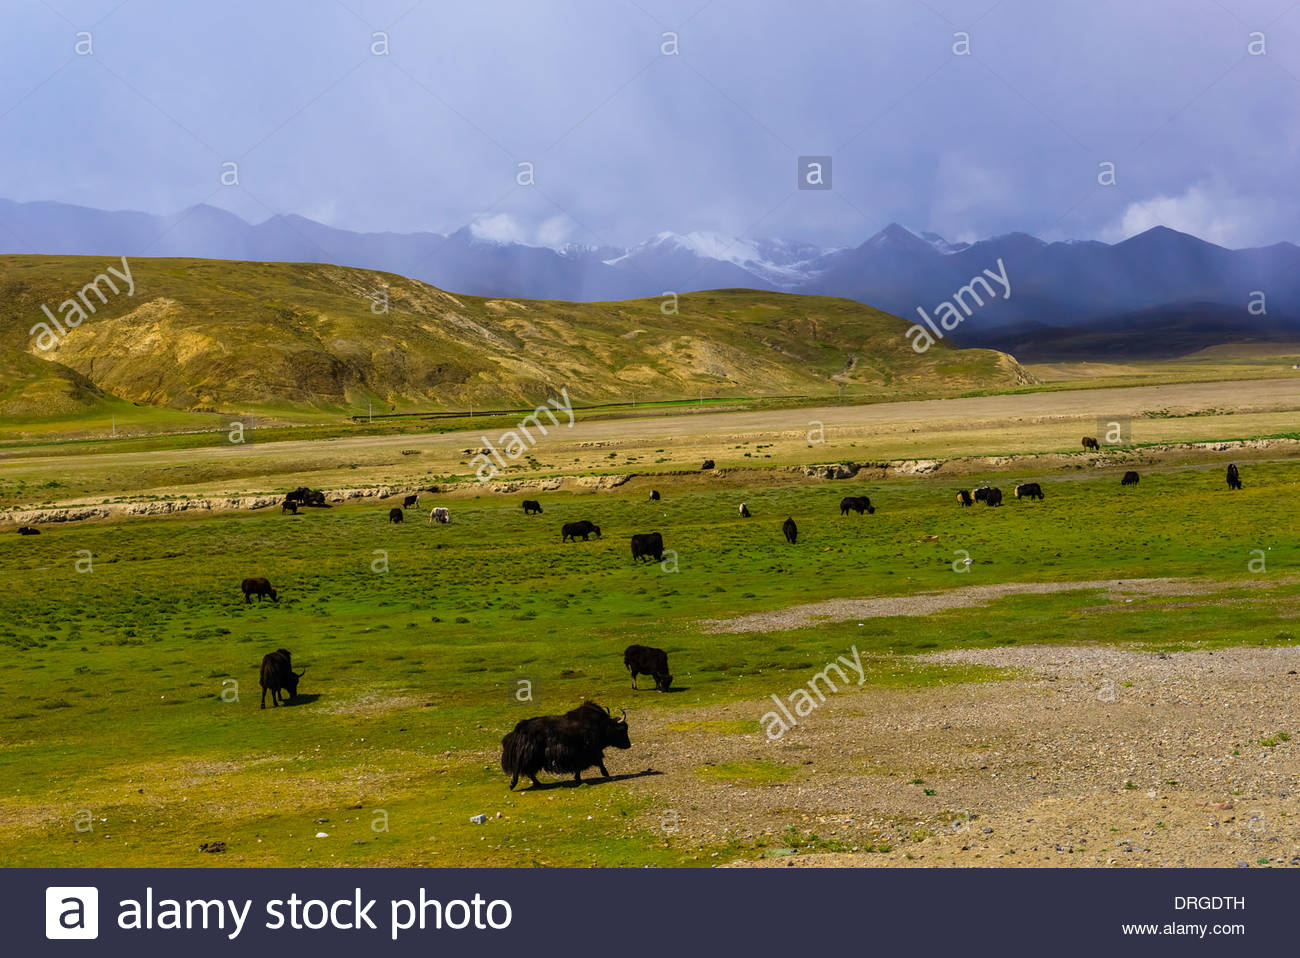 Yaks grazing, Shannon Prefecture, Tibet (Xizang), China. - Stock Image